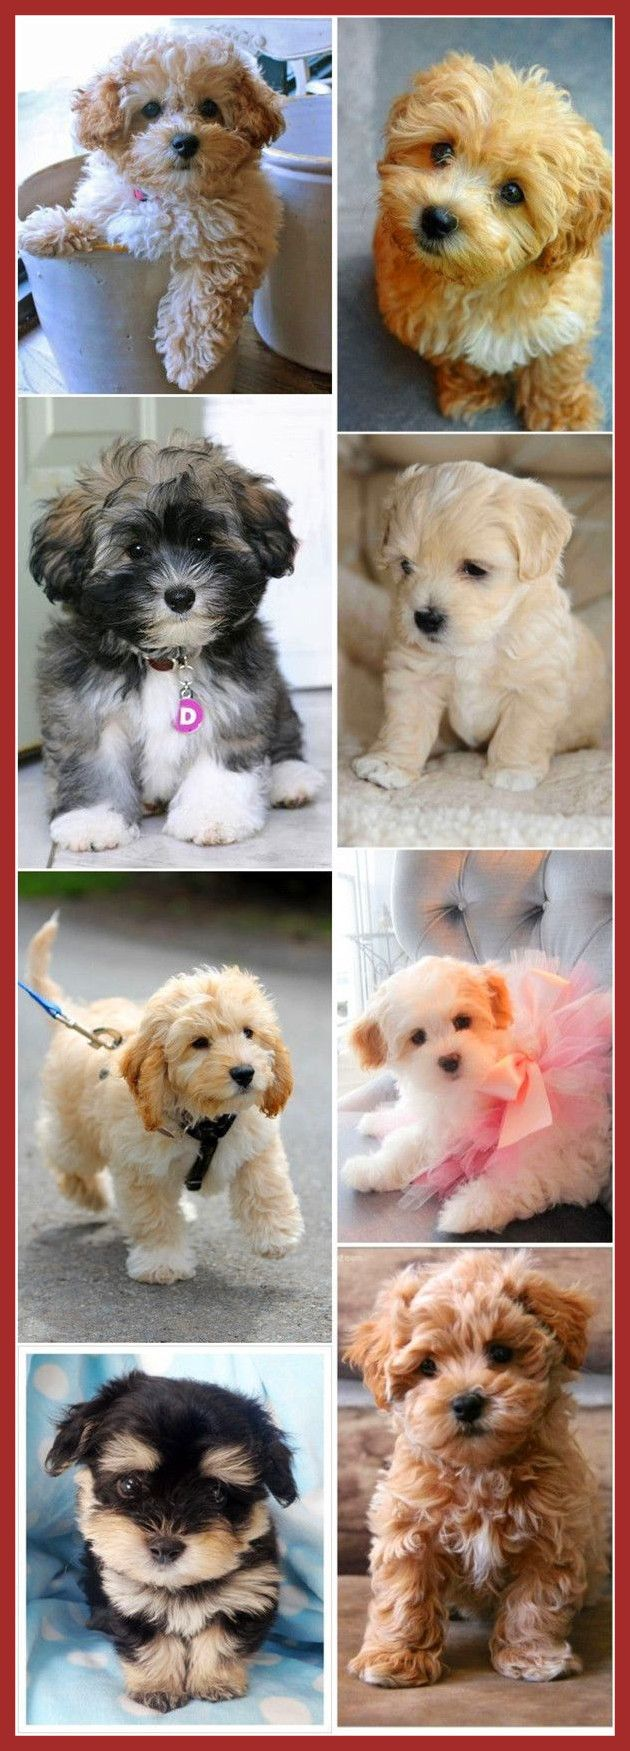 Fascinating top cutest small dog breeds havanese and of cute puppy